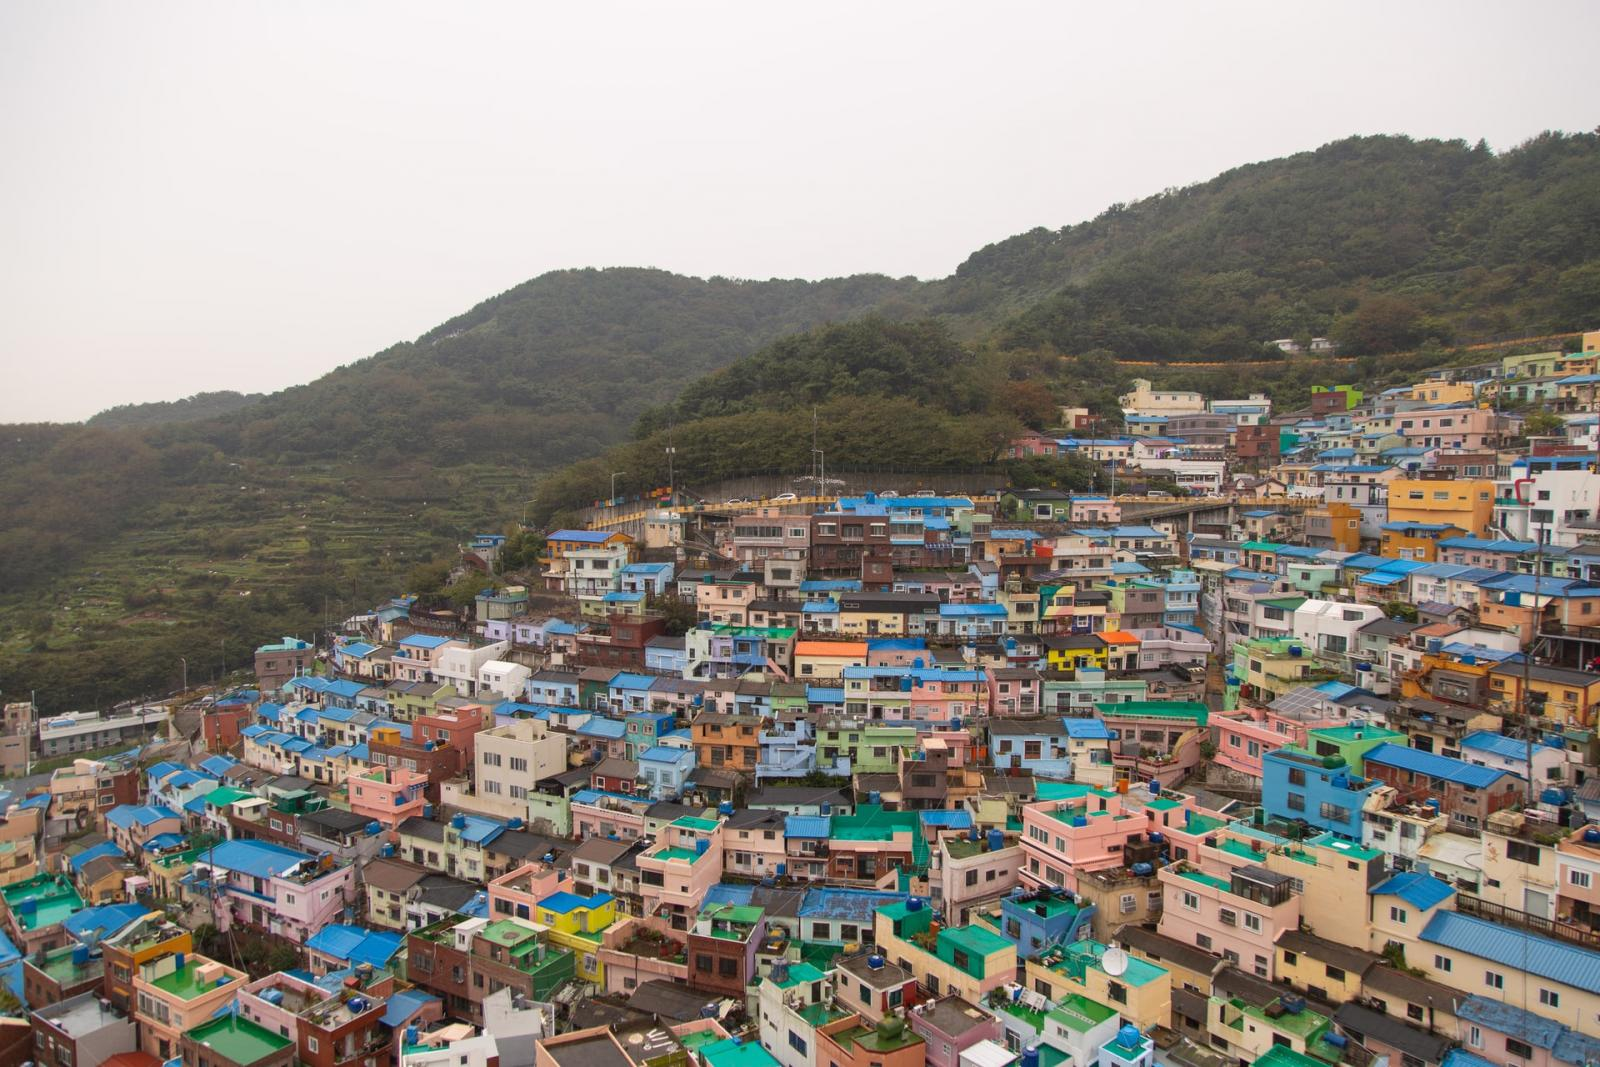 How Has the COVID-19 Response Impacted People Living in Slum Neighborhoods?